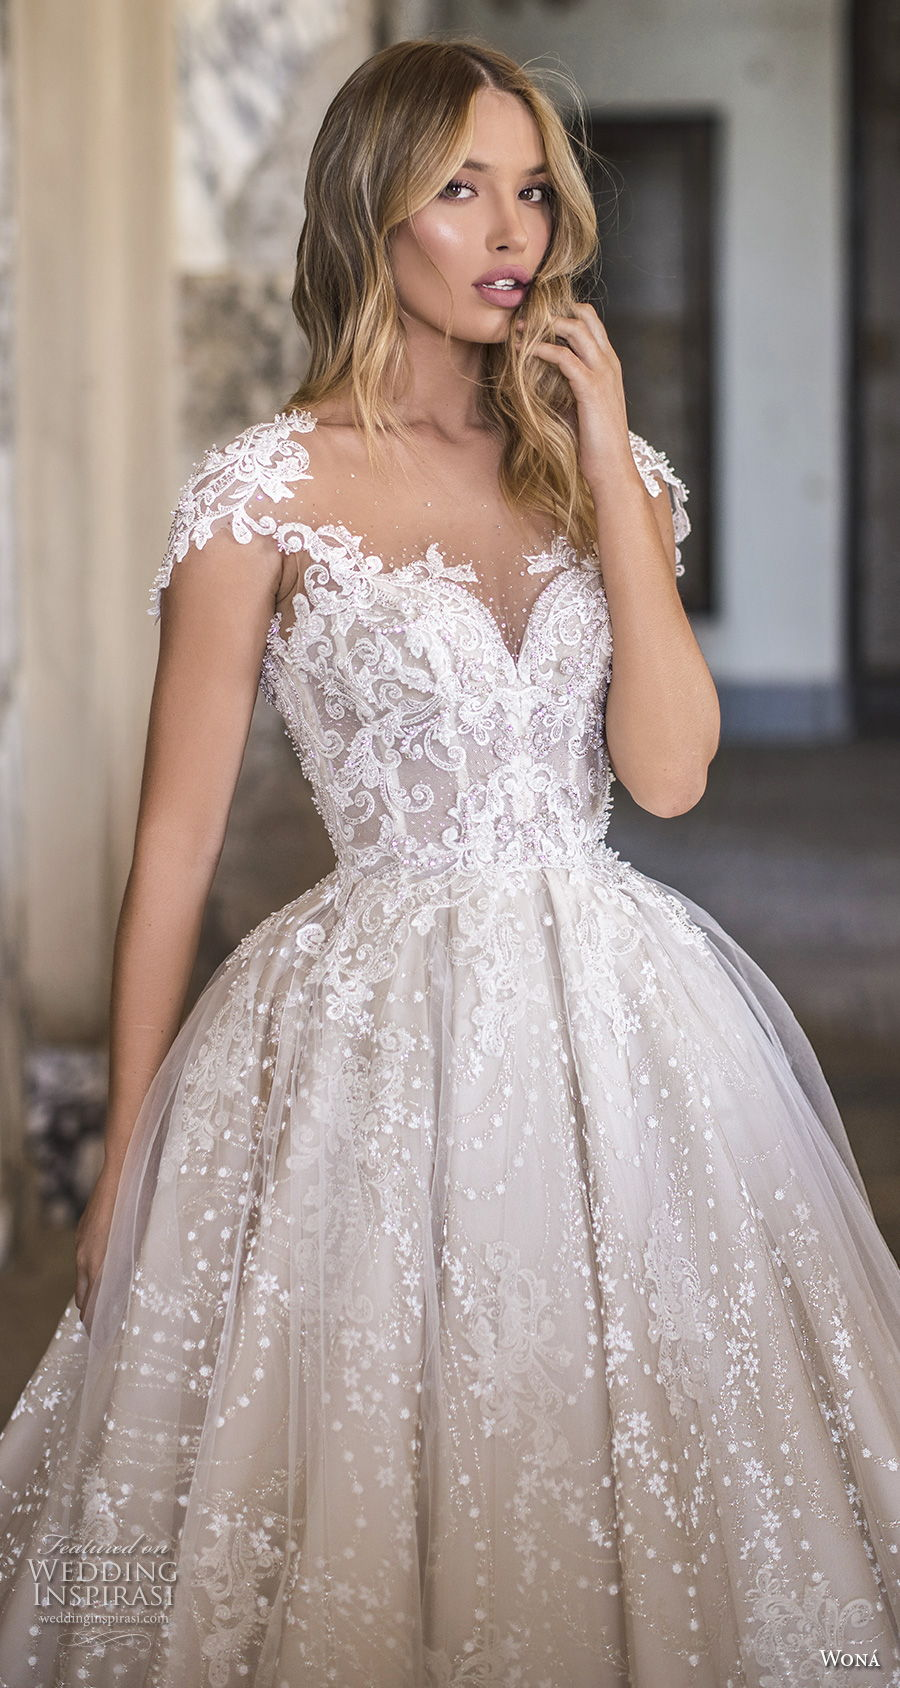 wona 2020 couture bridal cap sleeves sweetheart neckline full embellishment romantic princess ball gown a  line wedding dress backless chapel train (2) zv